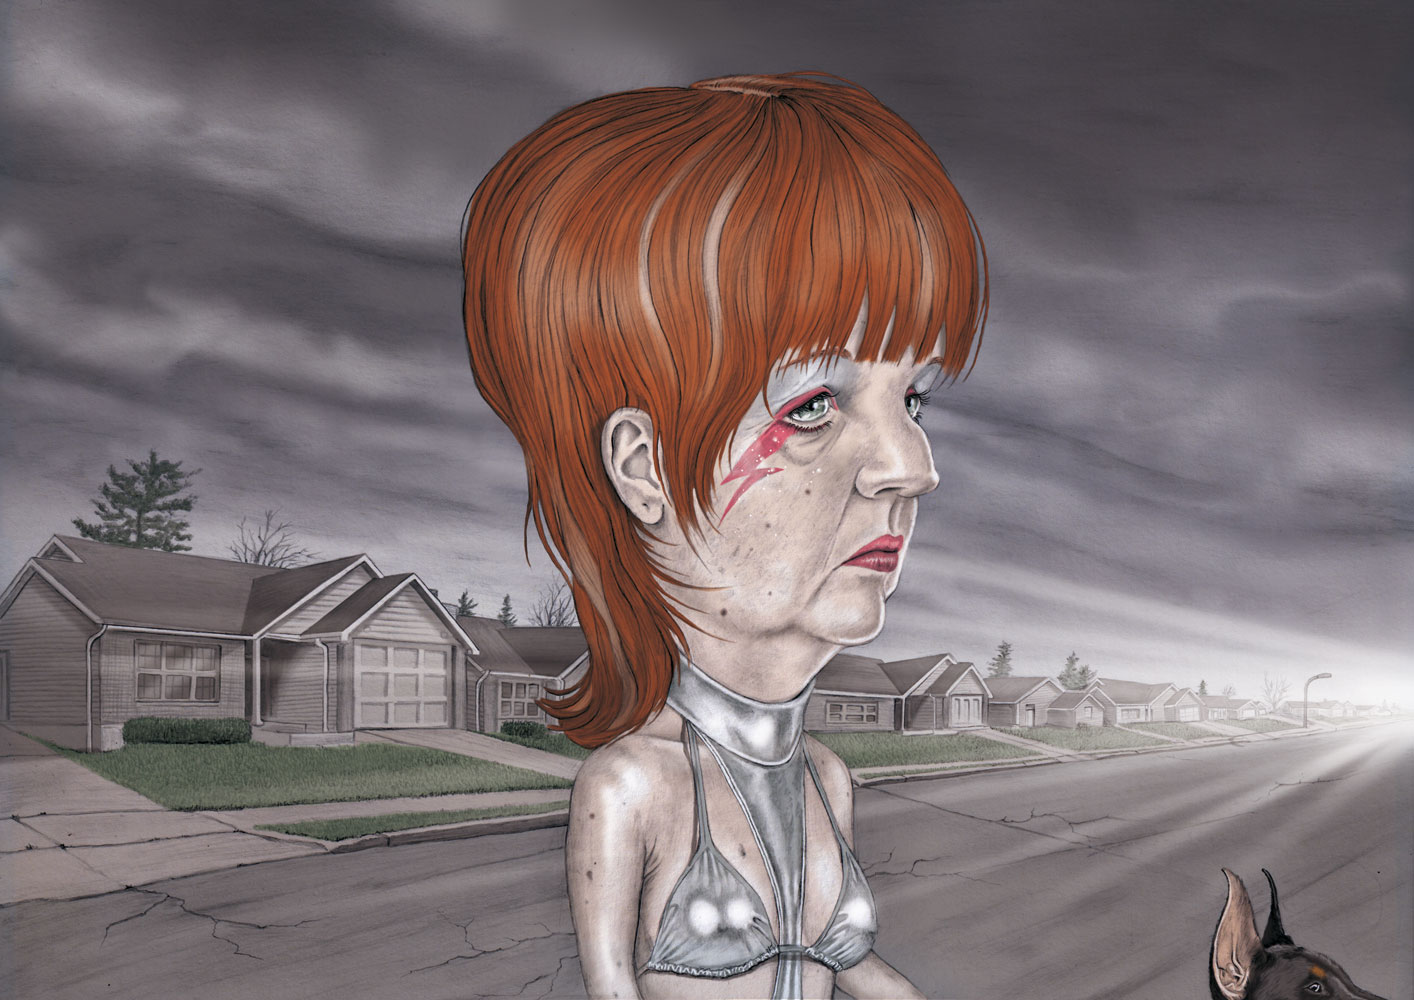 illustration, illustrations, illustrator, illustrators, woman, women, dog, animal, dogs, house, houses, cloud, clouds, overcast, cloudy, tree, trees, street, streets, suburban, suburbia, makeup, old, elderly, hair, hairstyle, bikini, metallic, swimsuit, erotic, strange, humorous